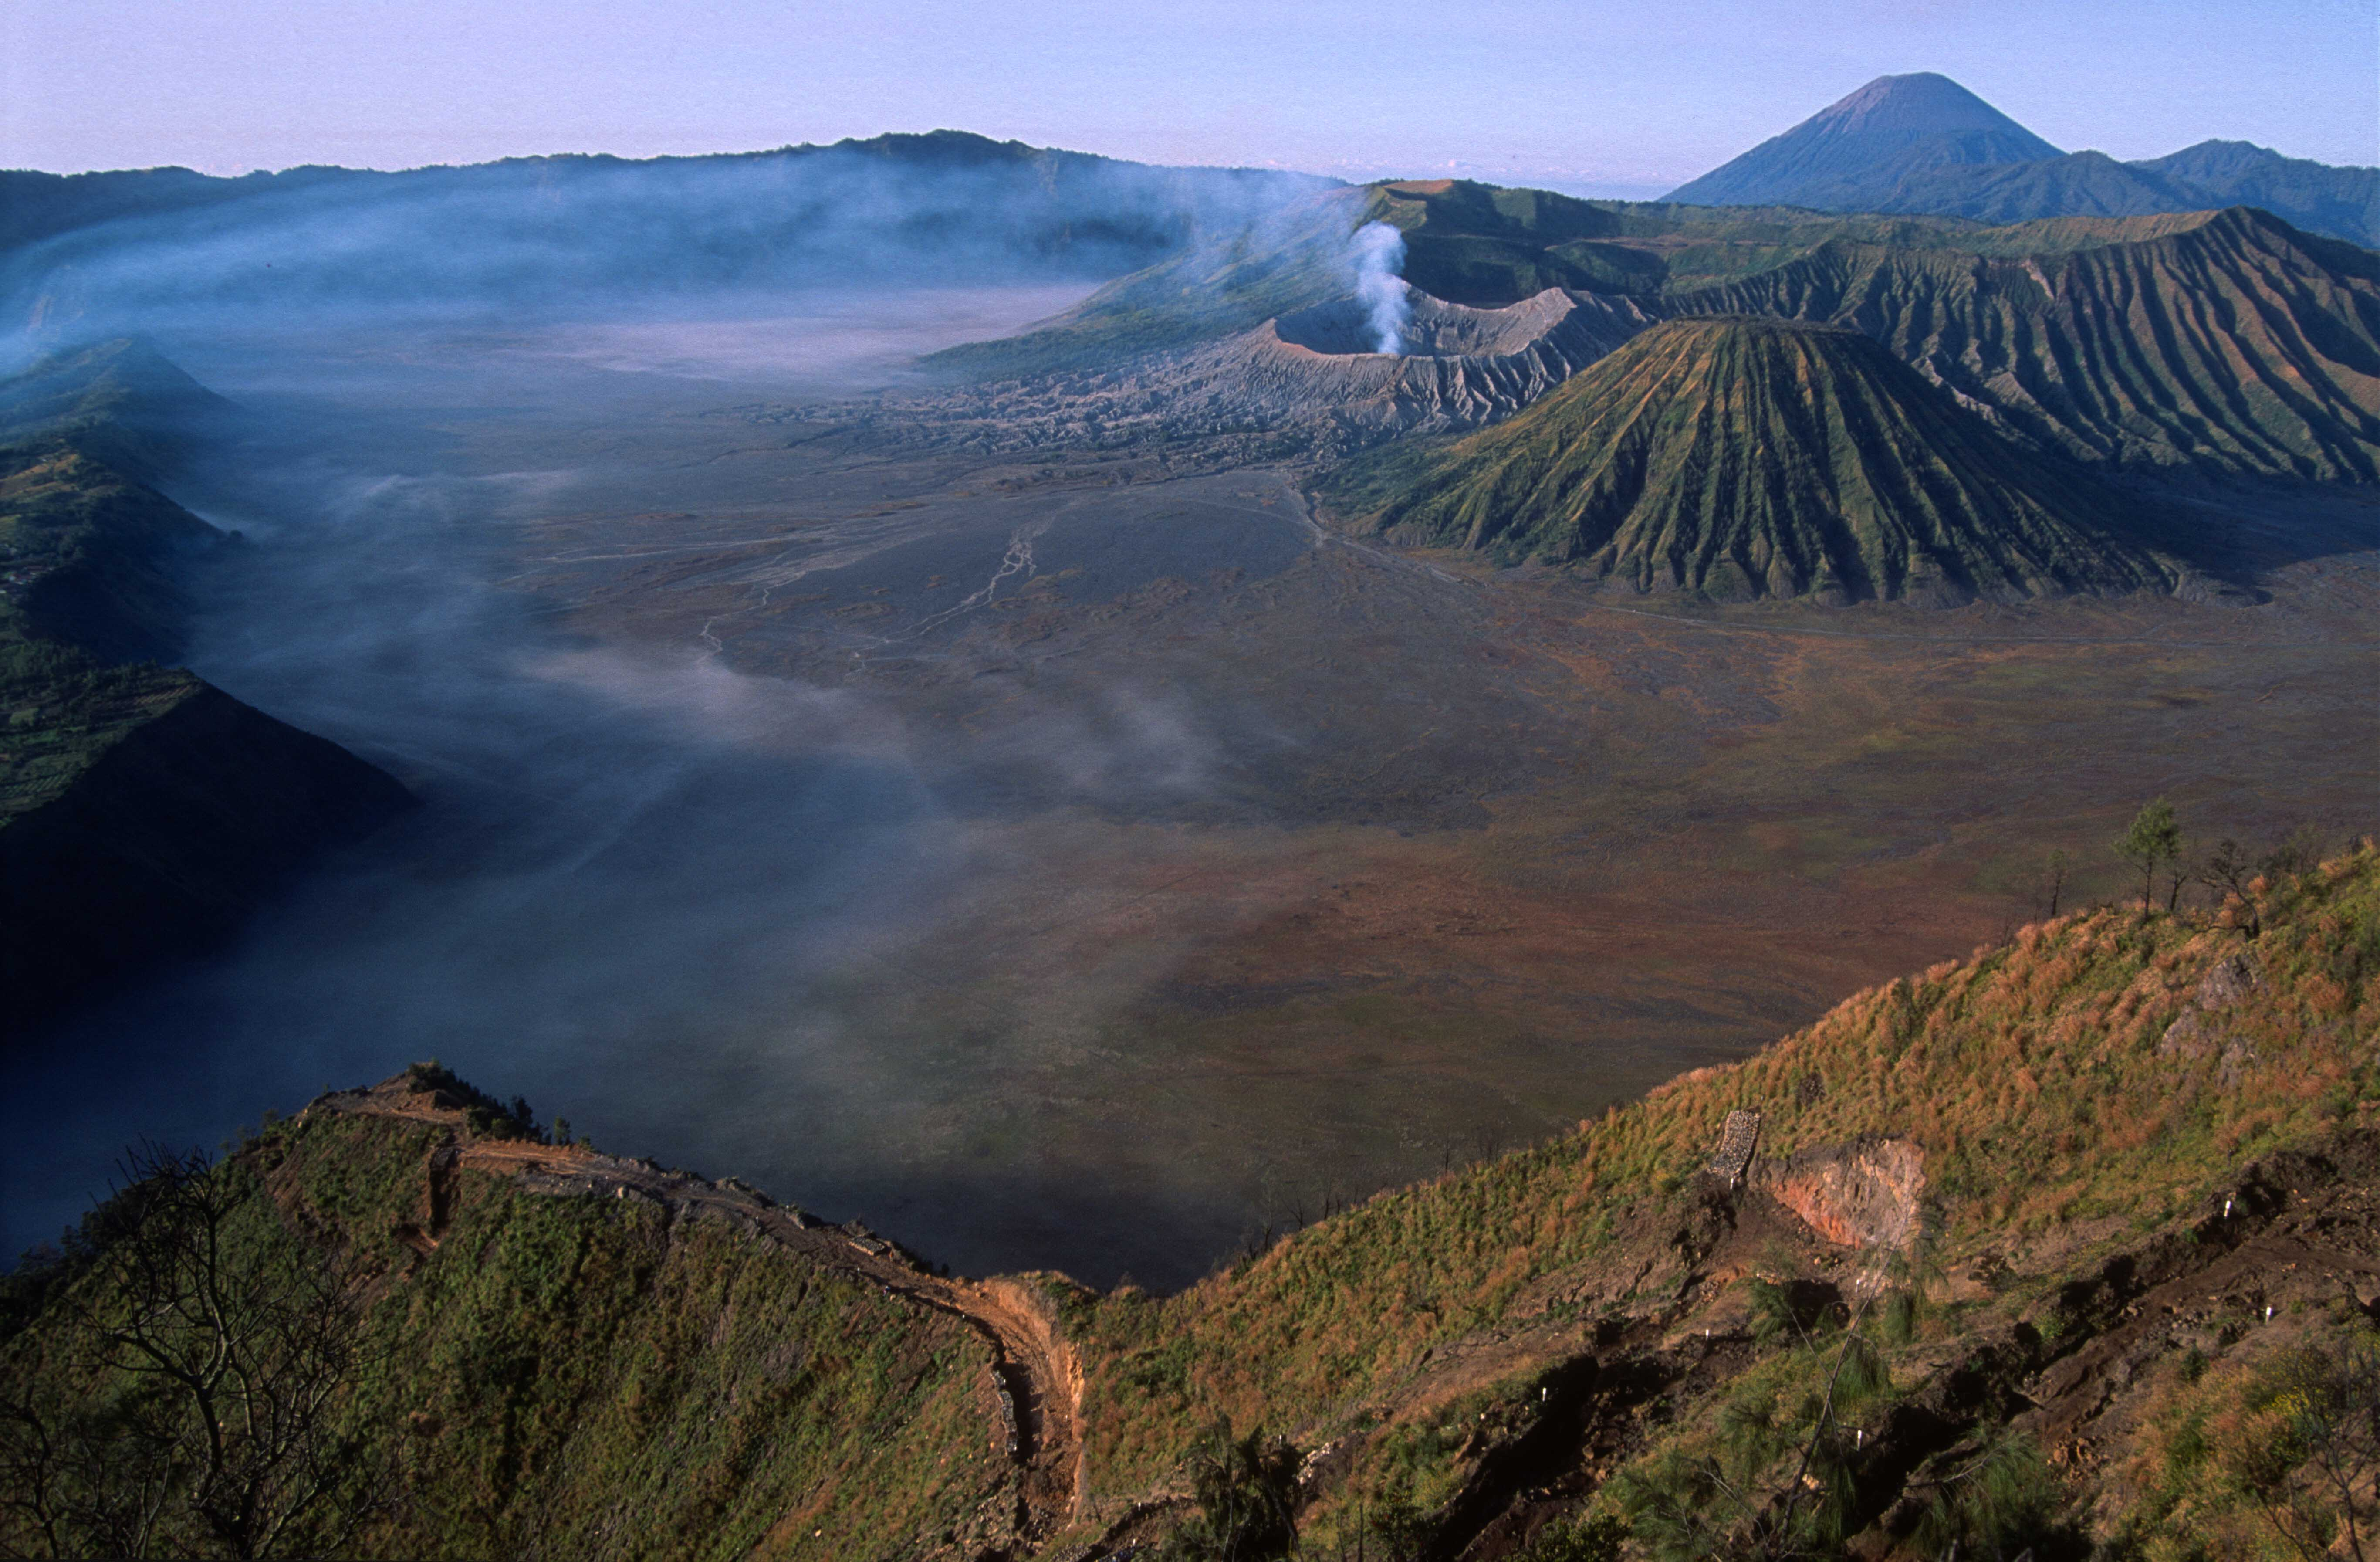 T3933. Craters and mist at Mt Bromo. Java. Indonesia. July 1992crop